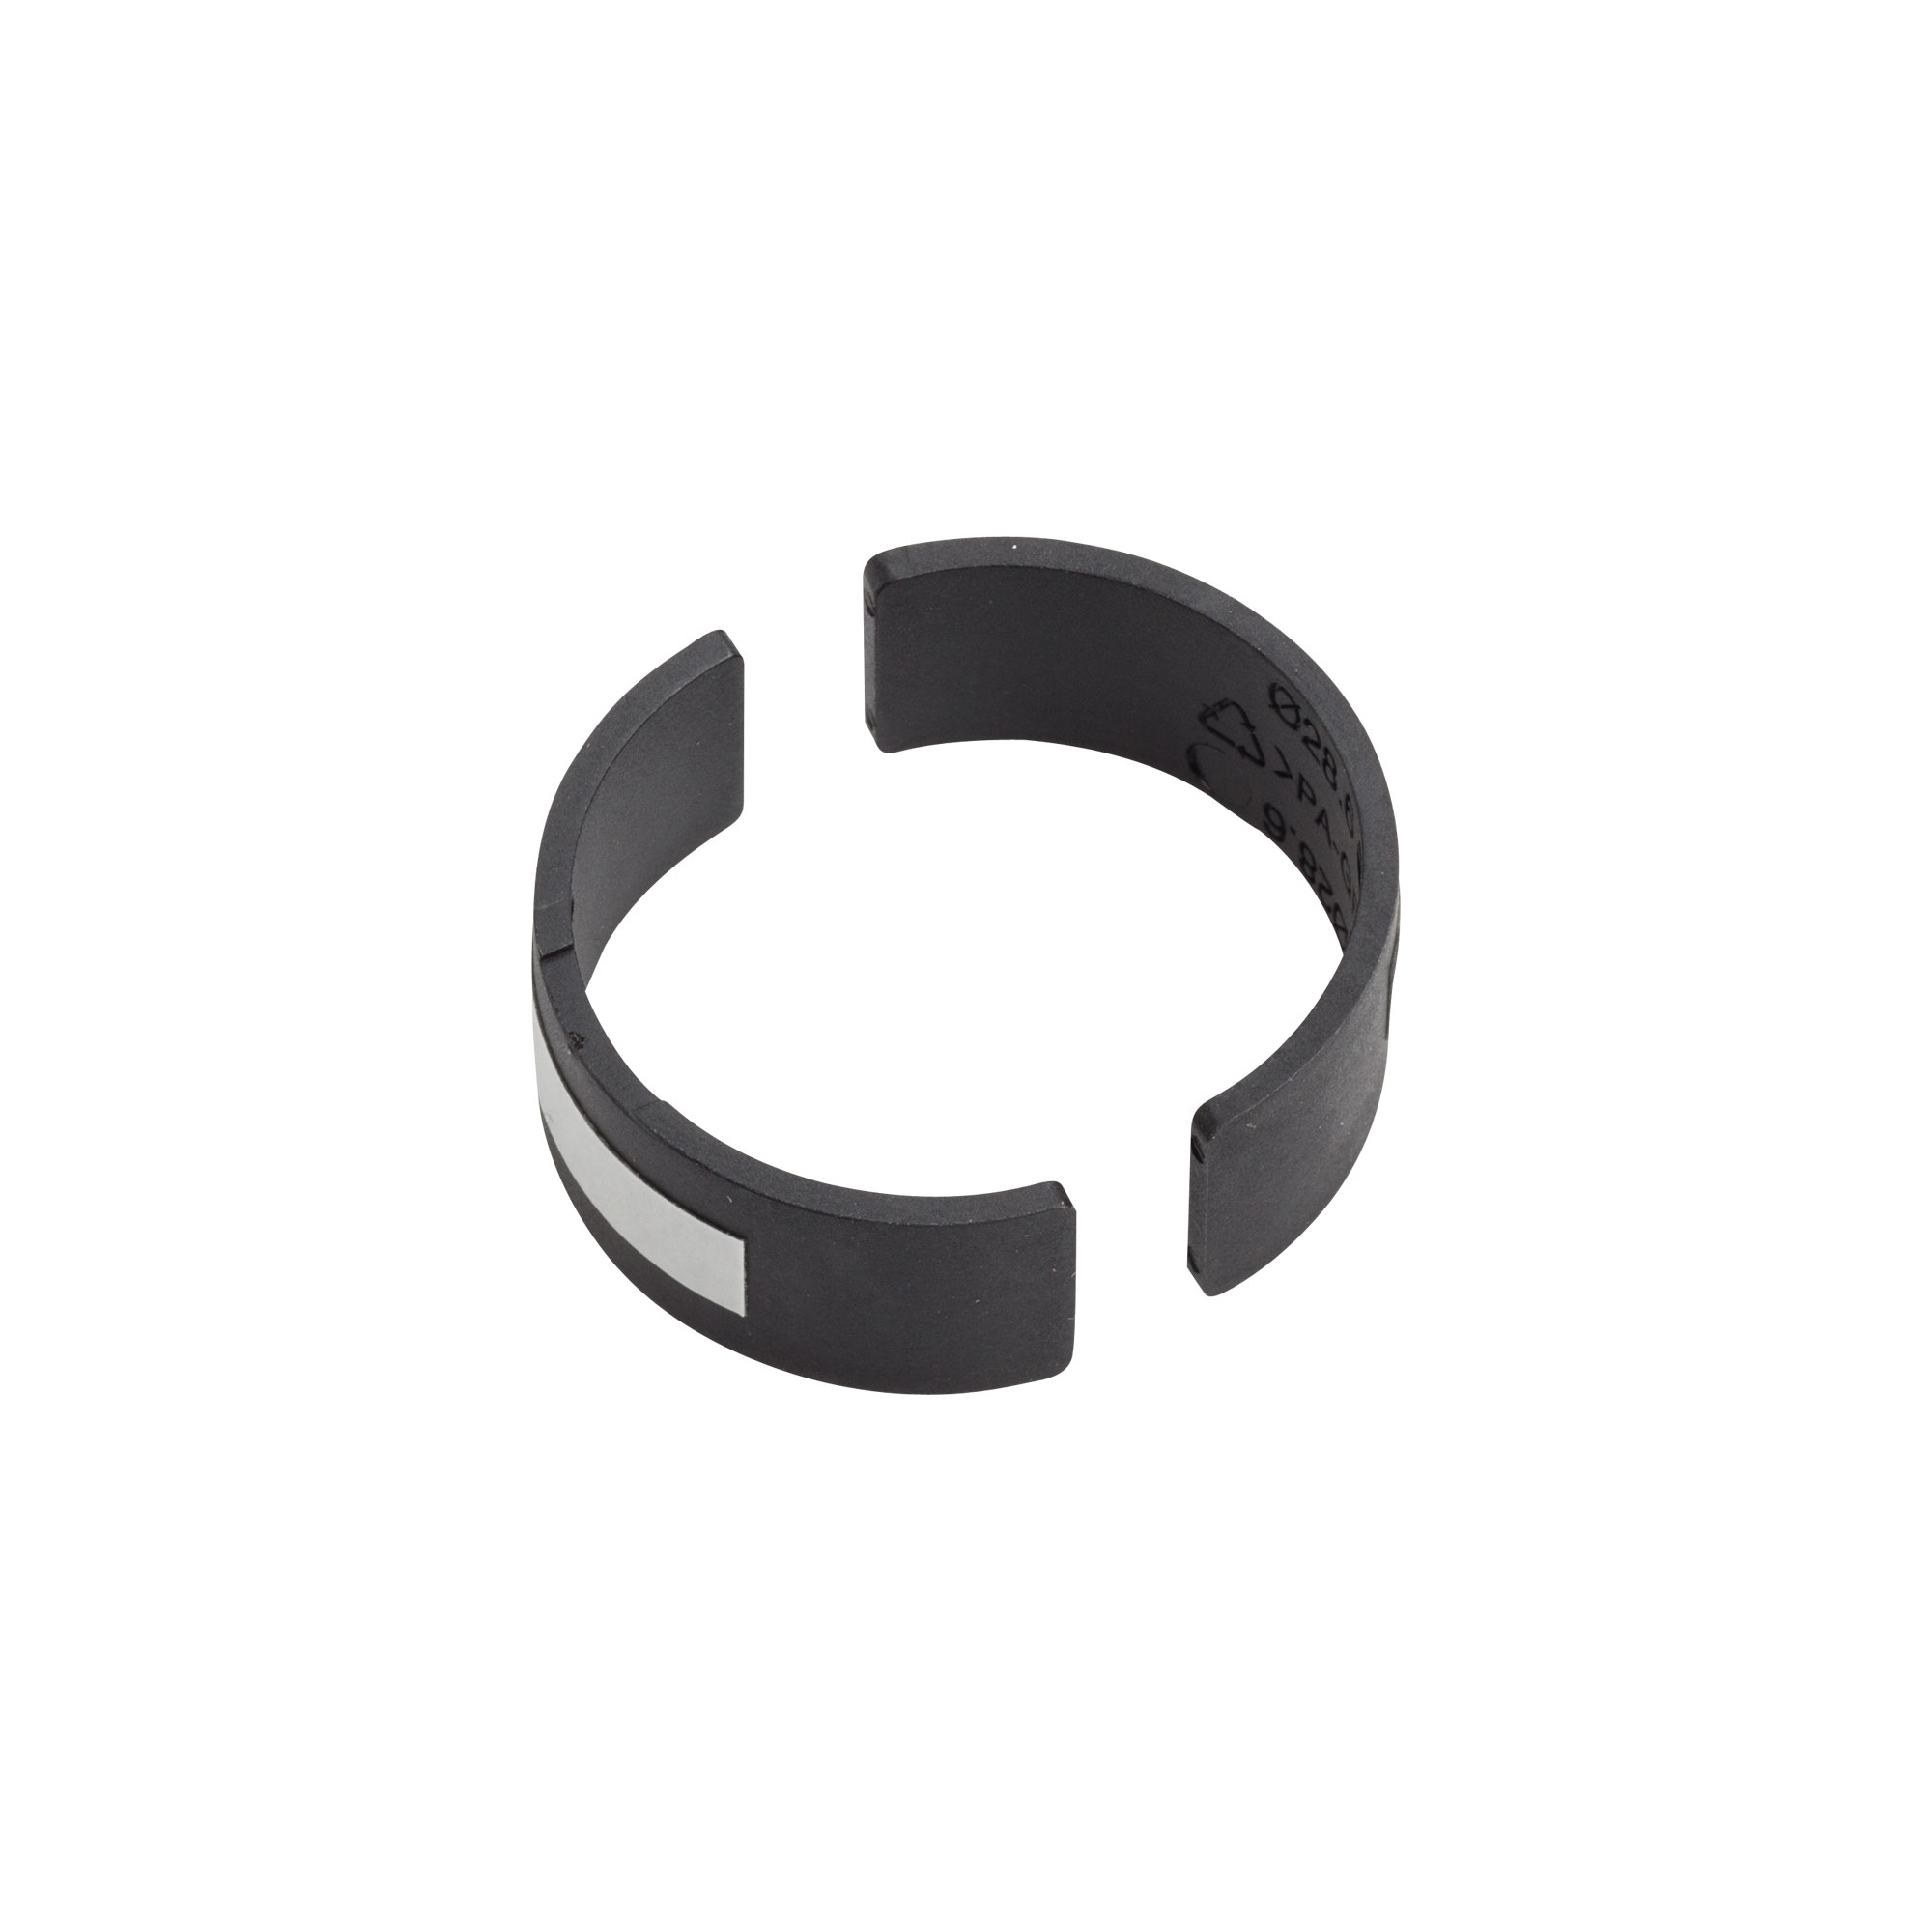 Bike Front Derailleur Clamp Adapter Shim 34.9mm To 31.8mm Reducing Sleeve Parts